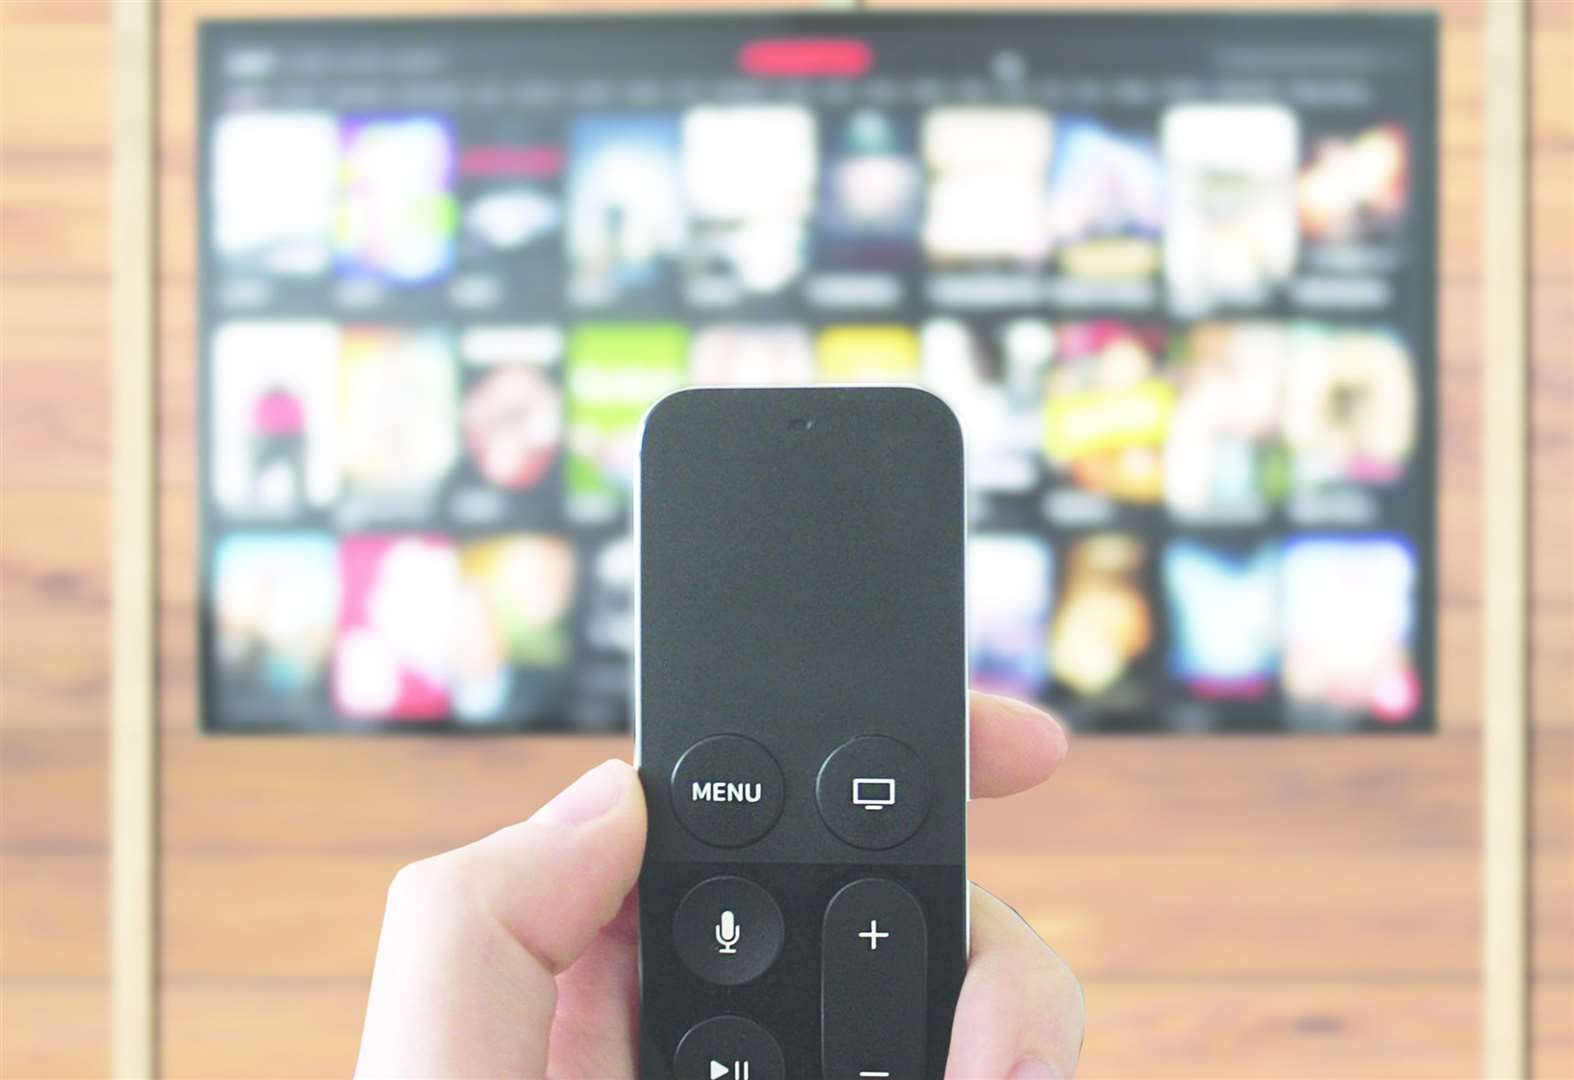 Ease the boredom with our guide to top TV streaming services